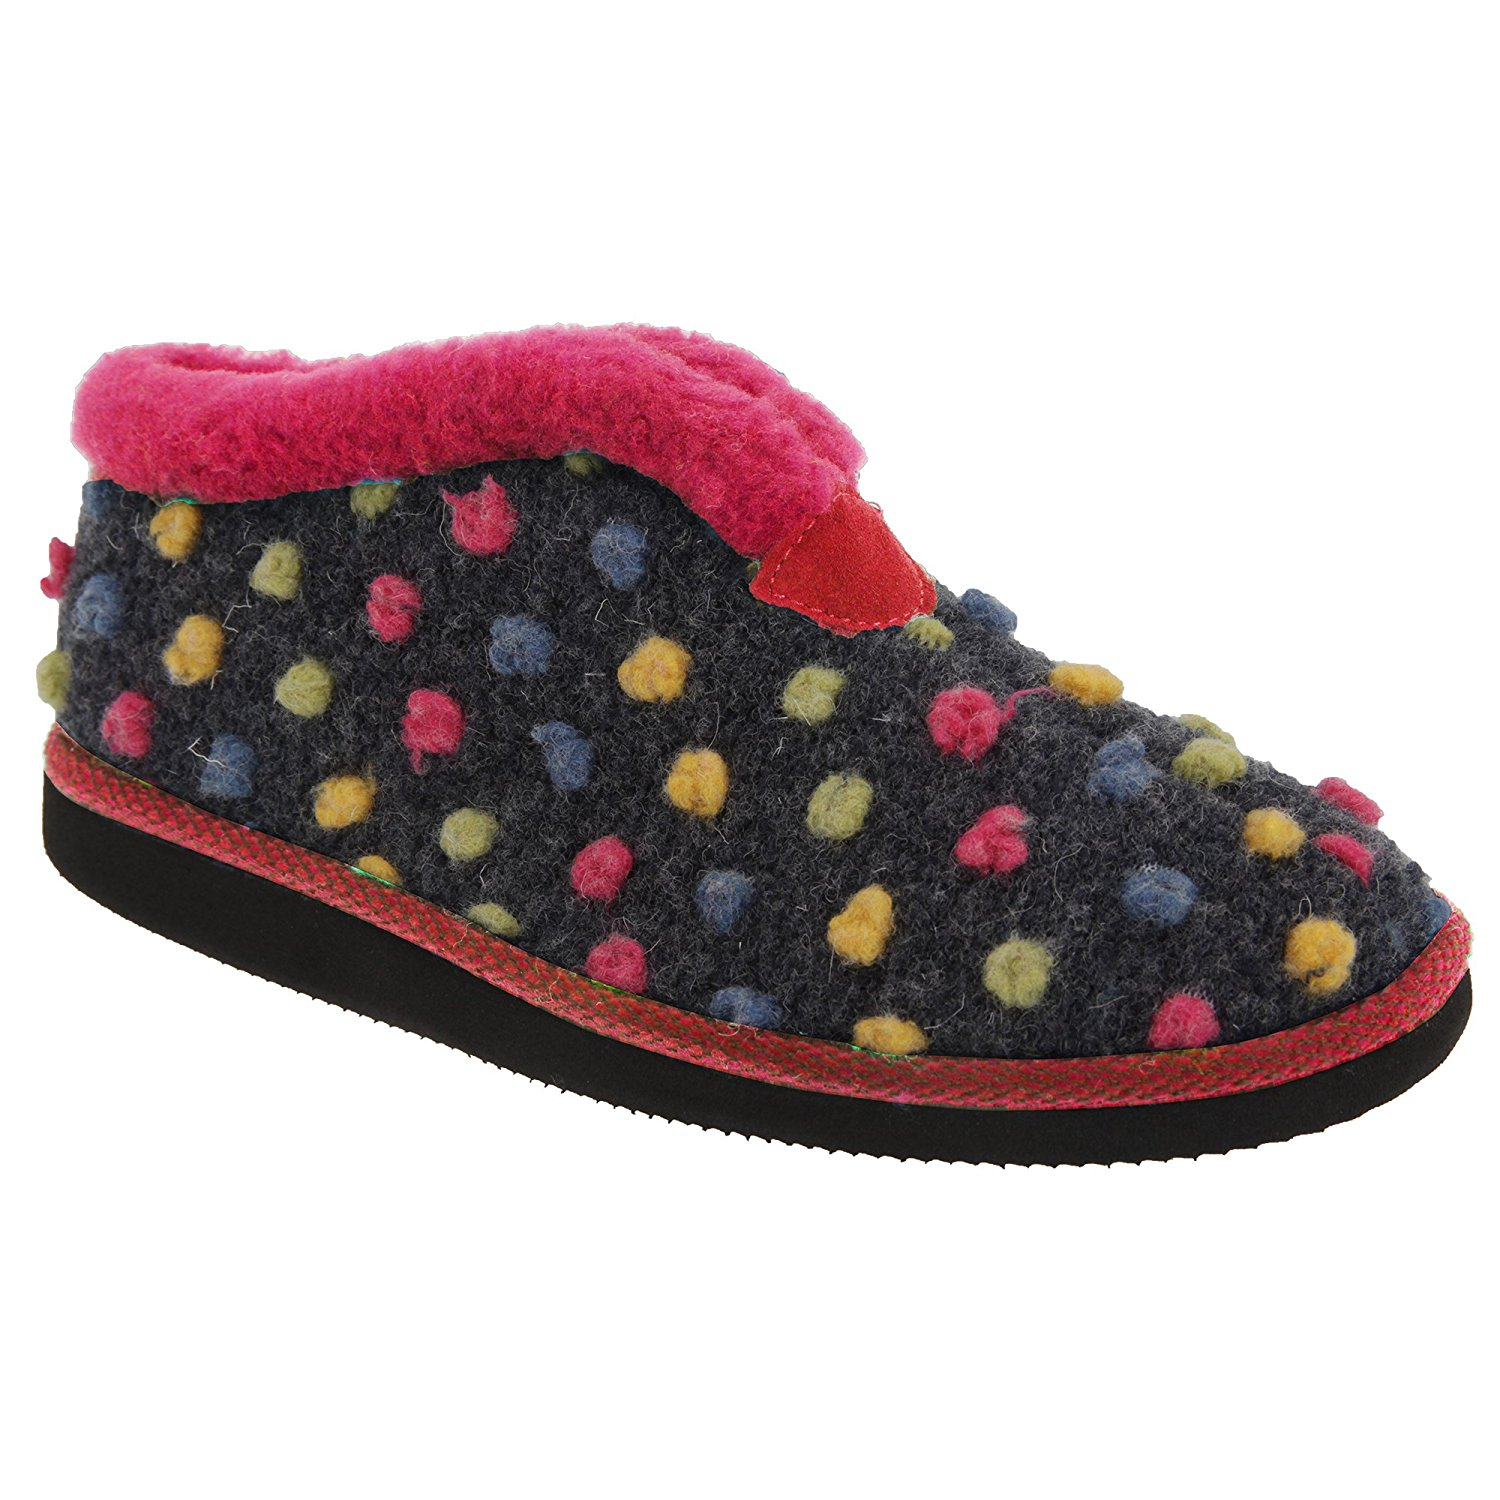 289b850b3ce Get Quotations · Sleepers Womens Ladies Tilly Lightweight Thermal Lined  Bootee Slippers